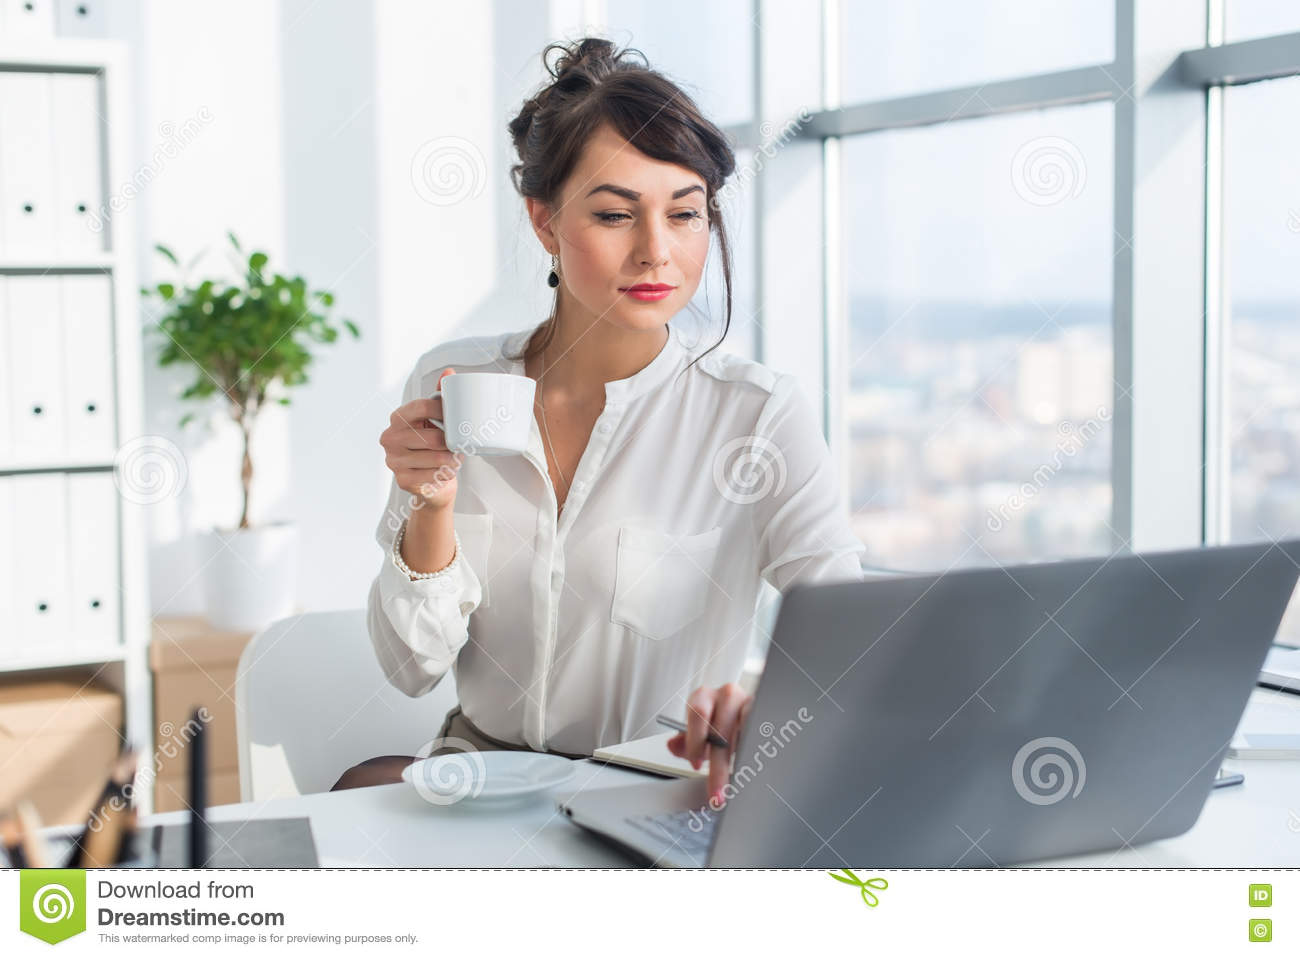 Young female business person working in office using laptop, reading and searching information attentively, drinking